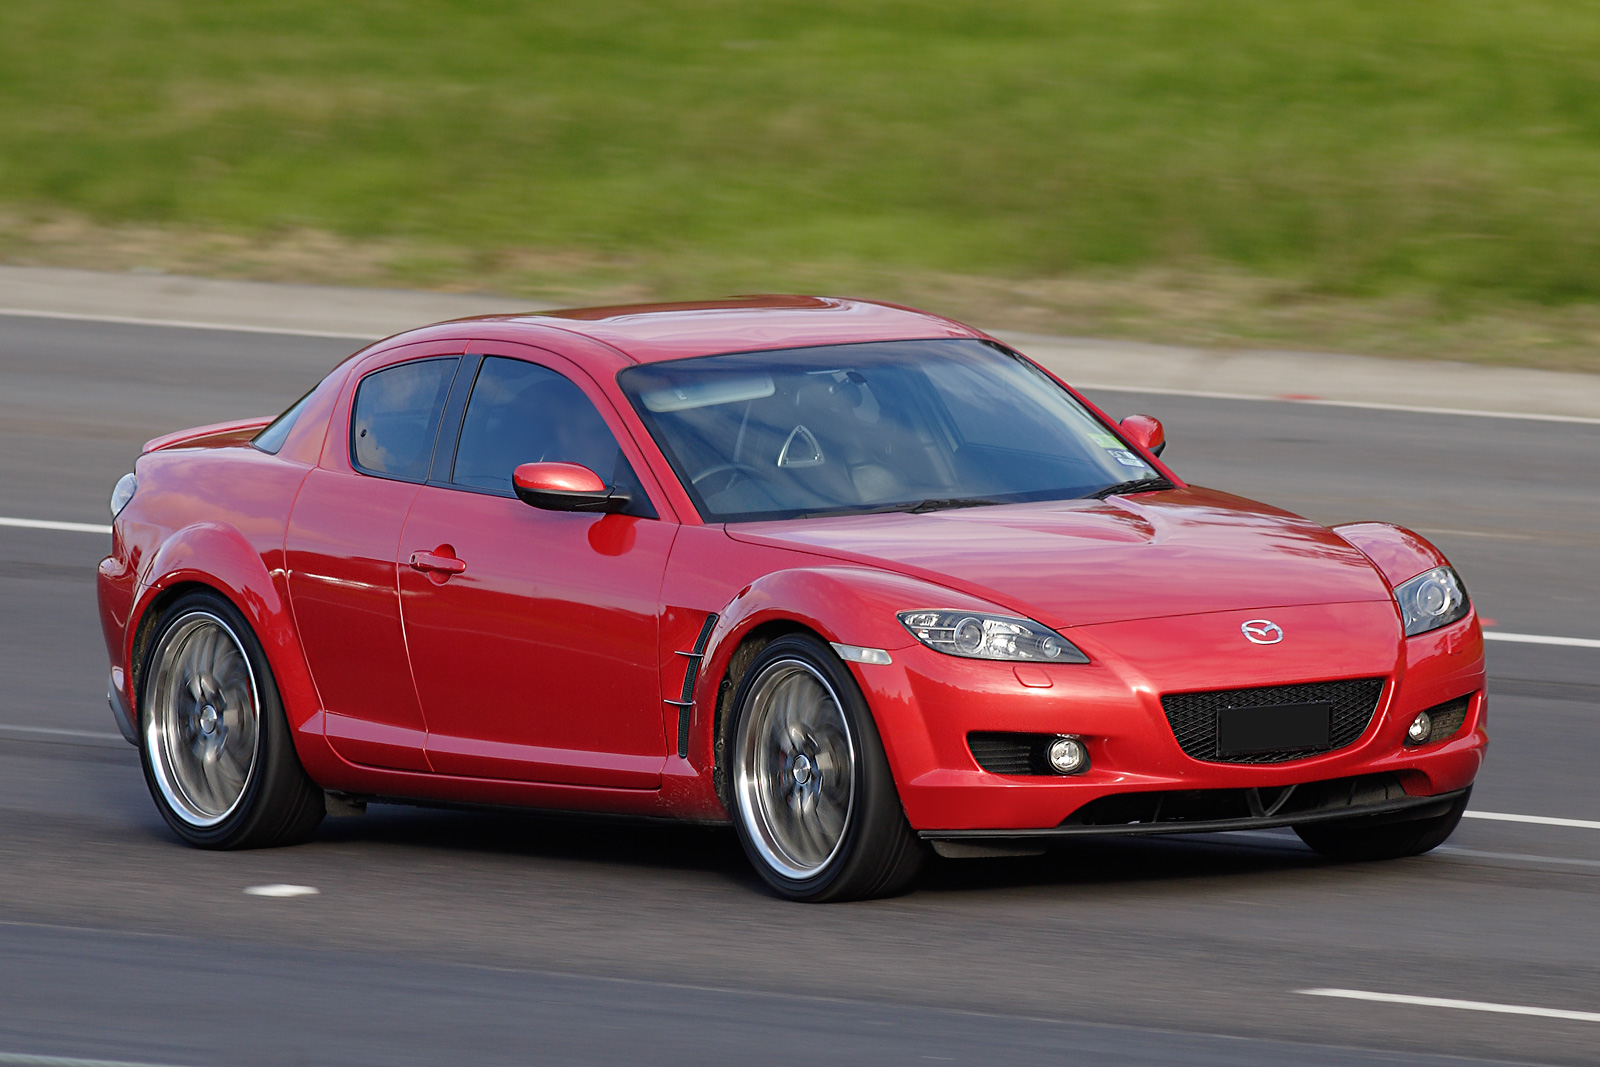 File:Mazda RX-8 on freeway.jpg